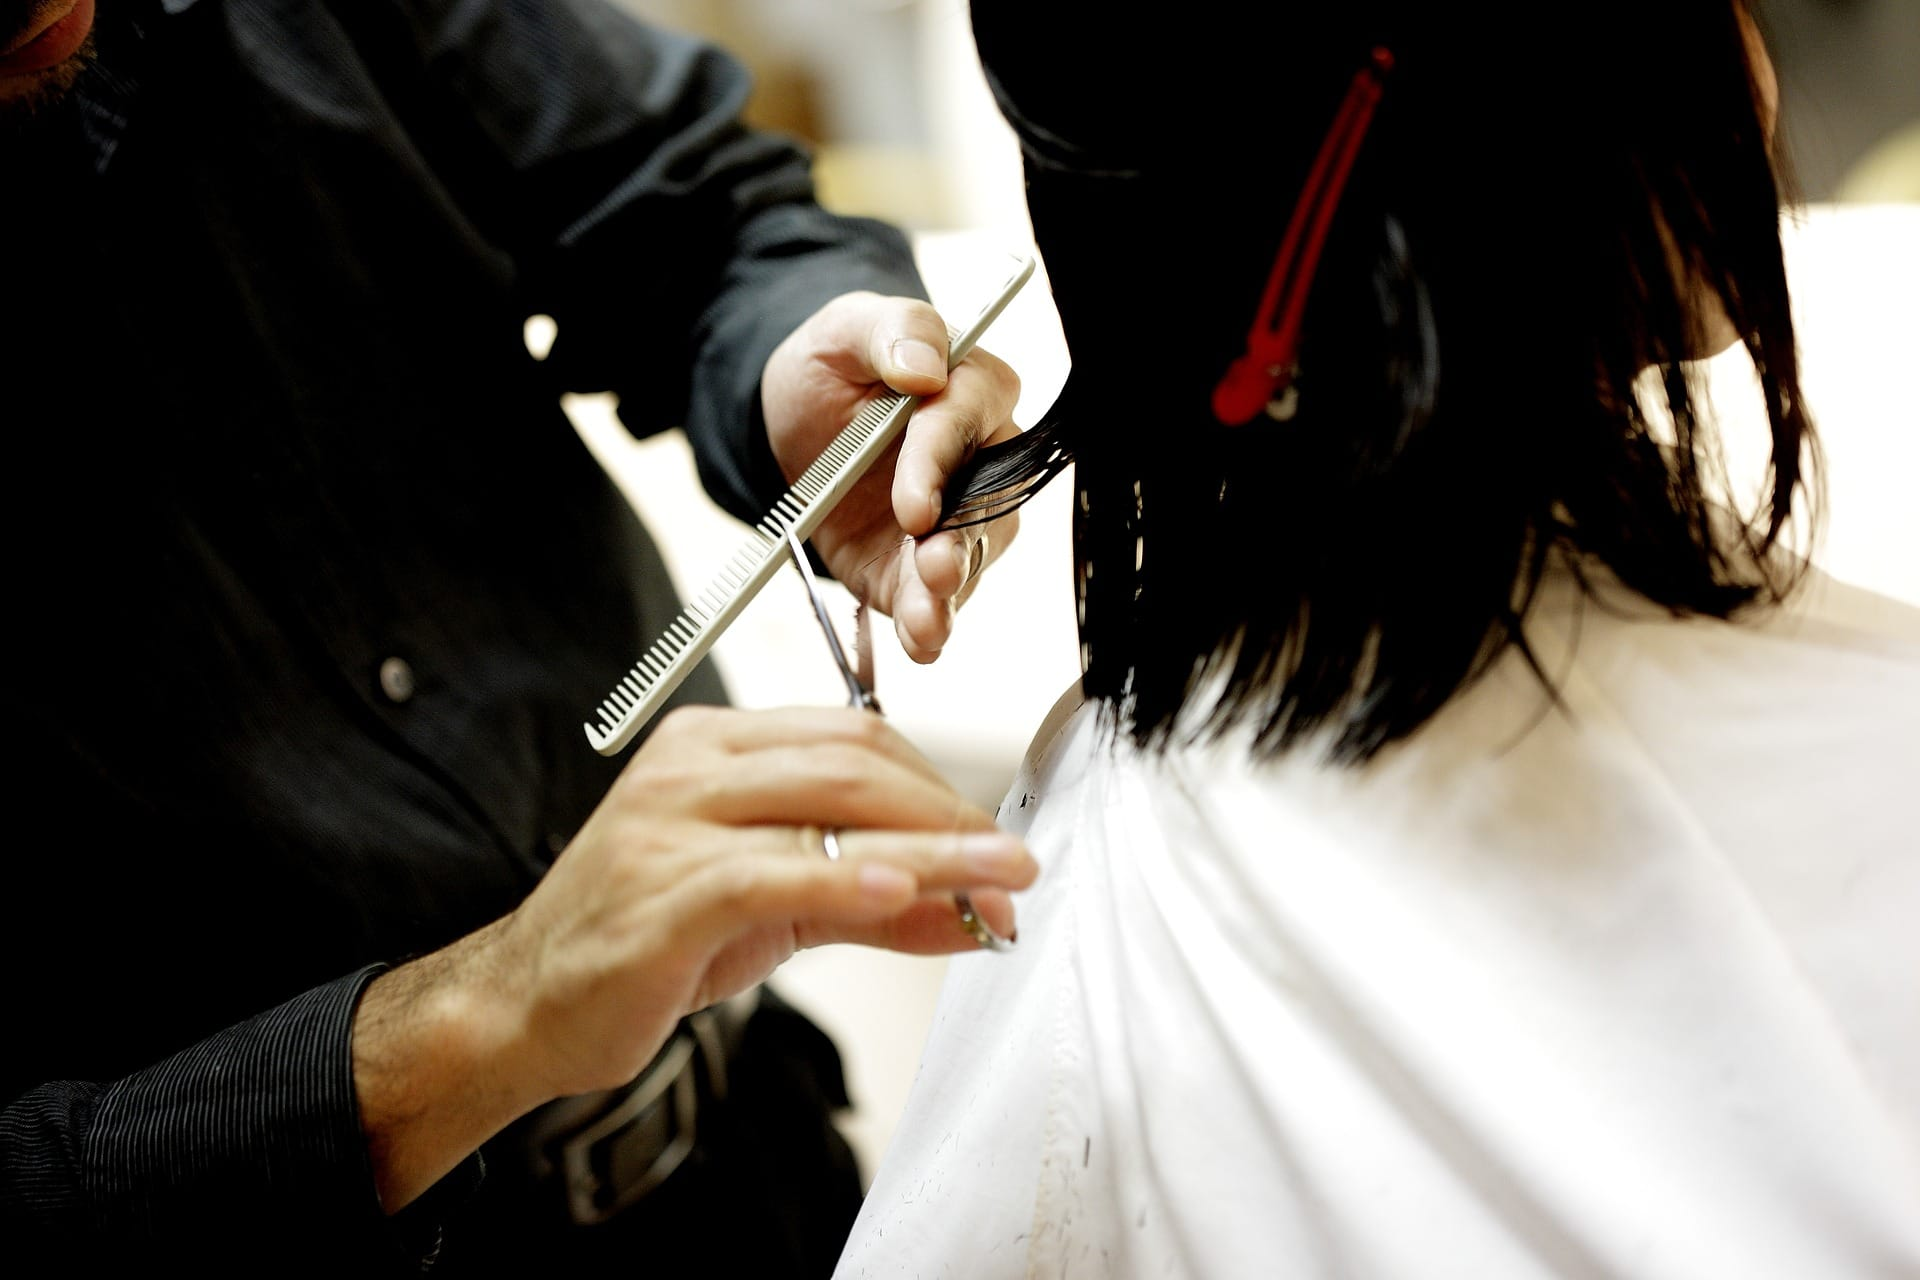 A hairdresser cutting hair